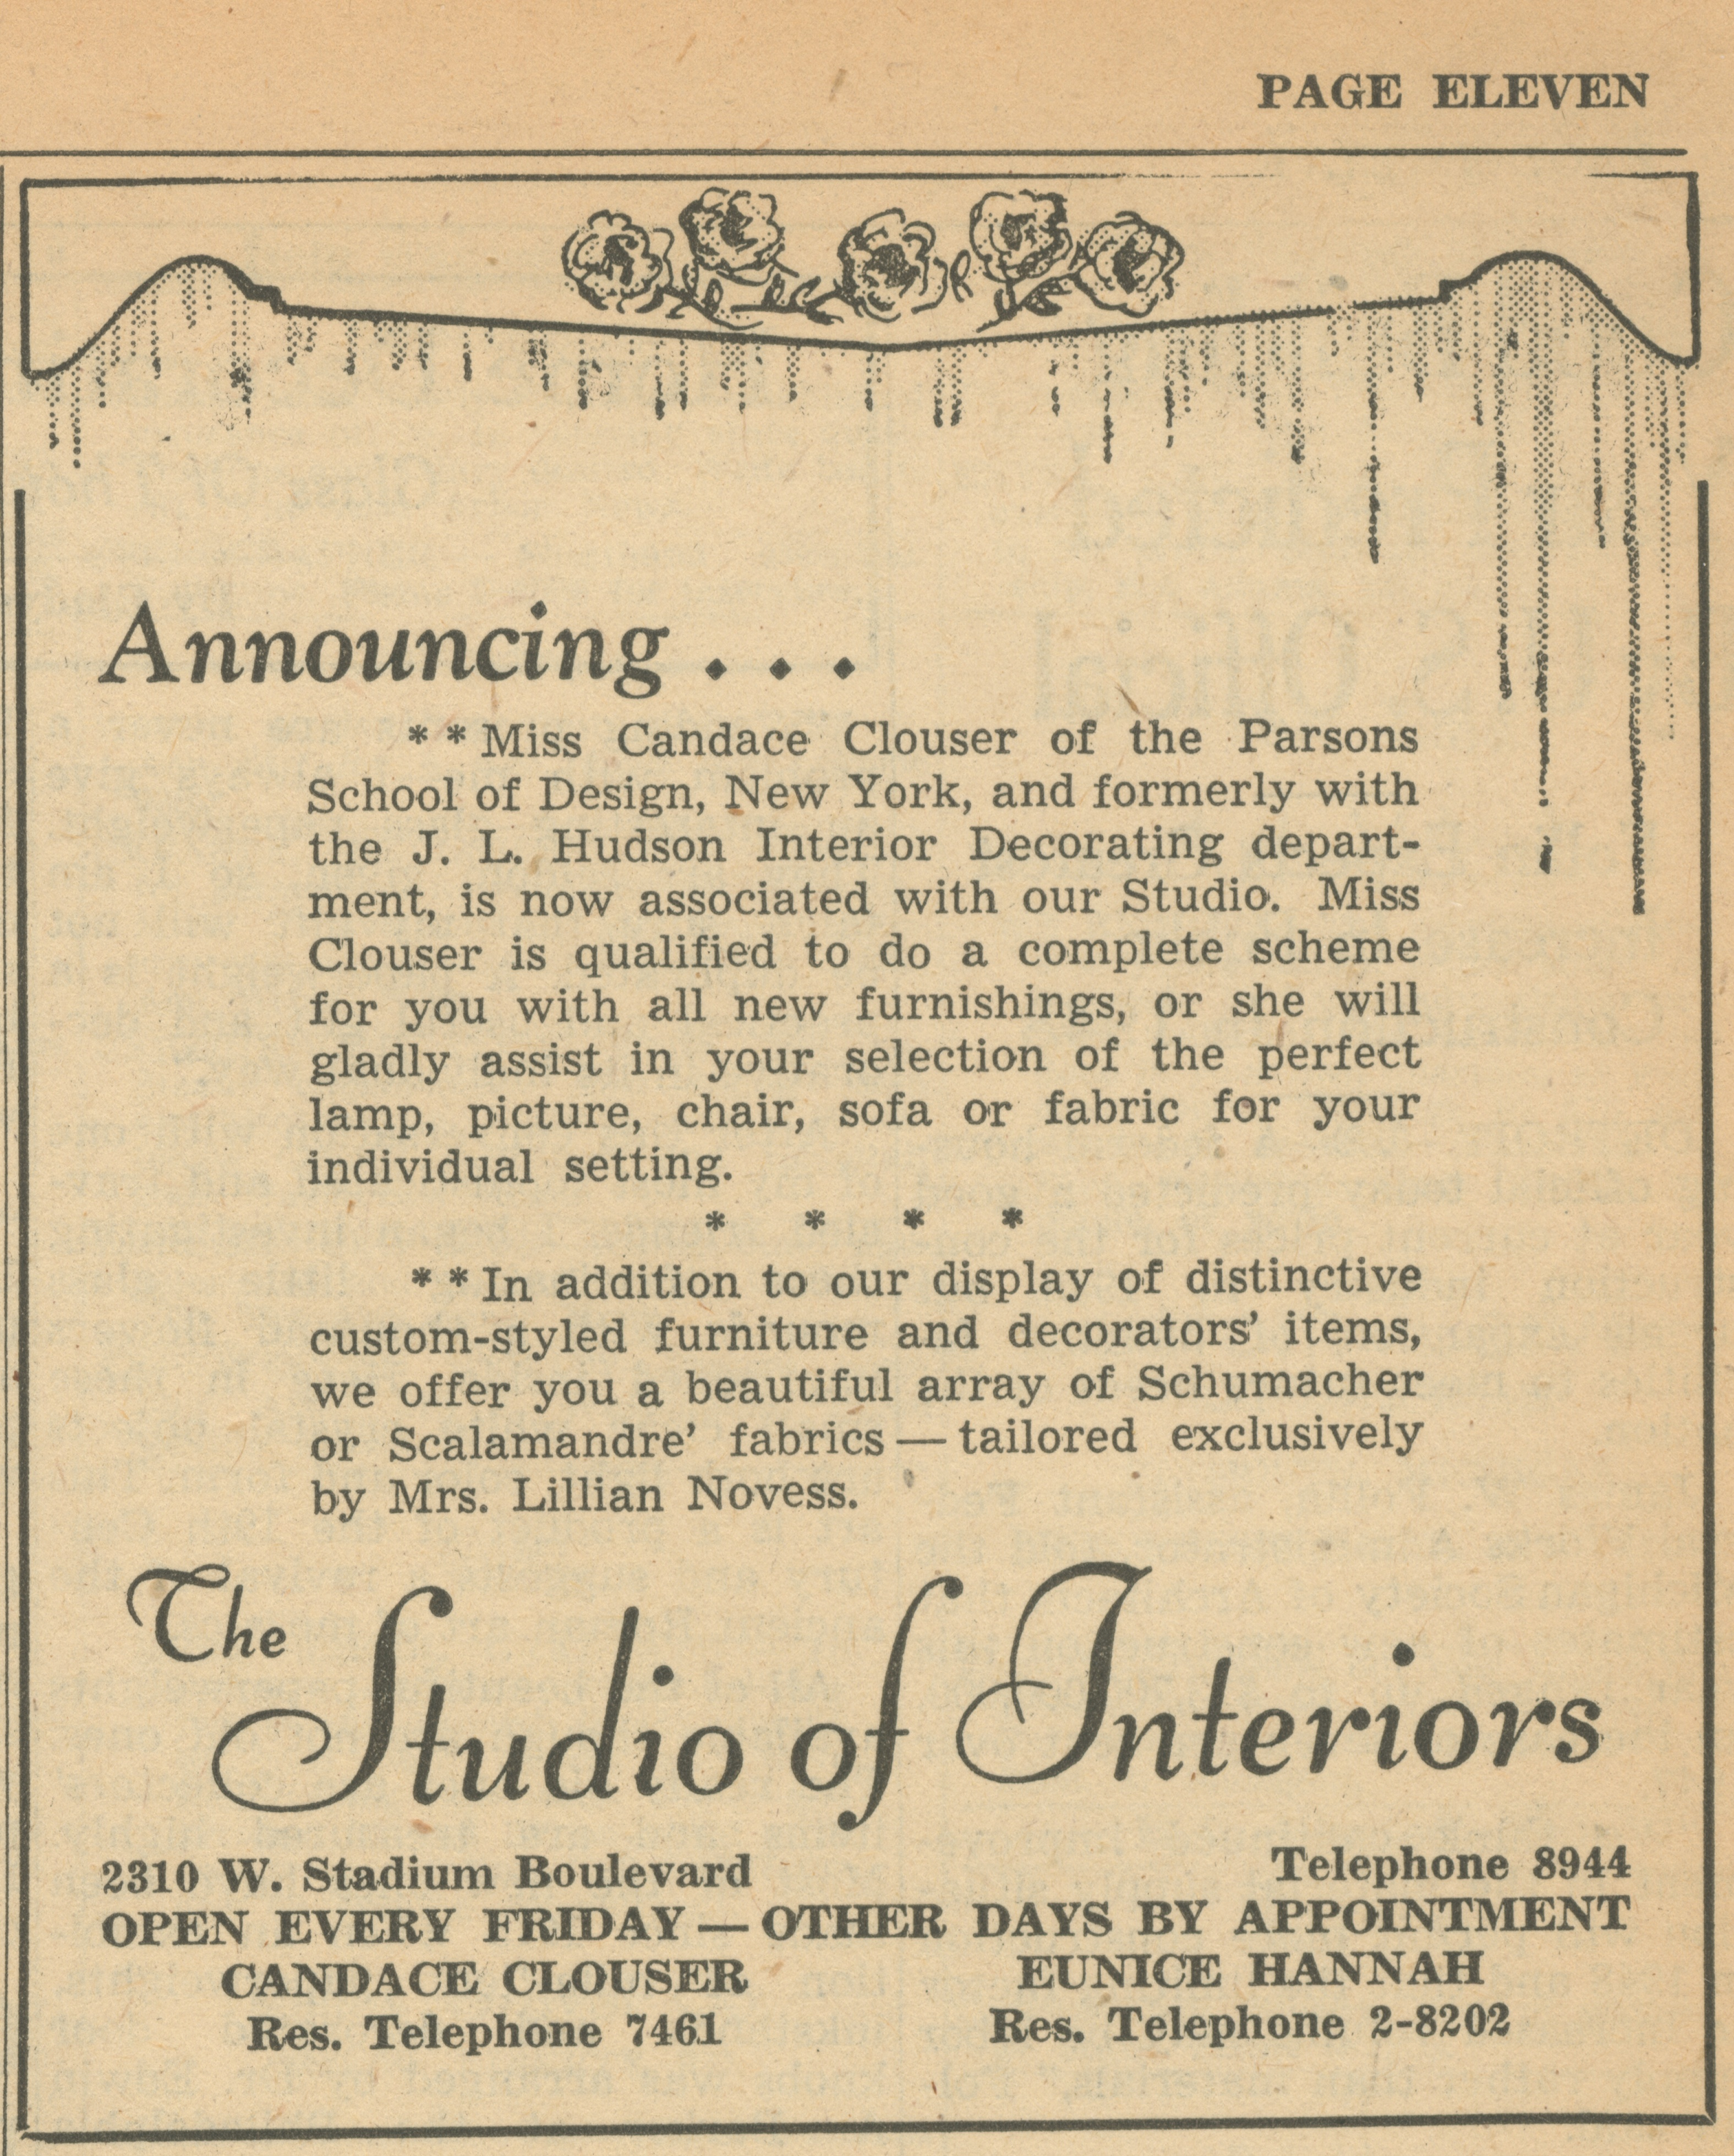 The Studio of Interiors image